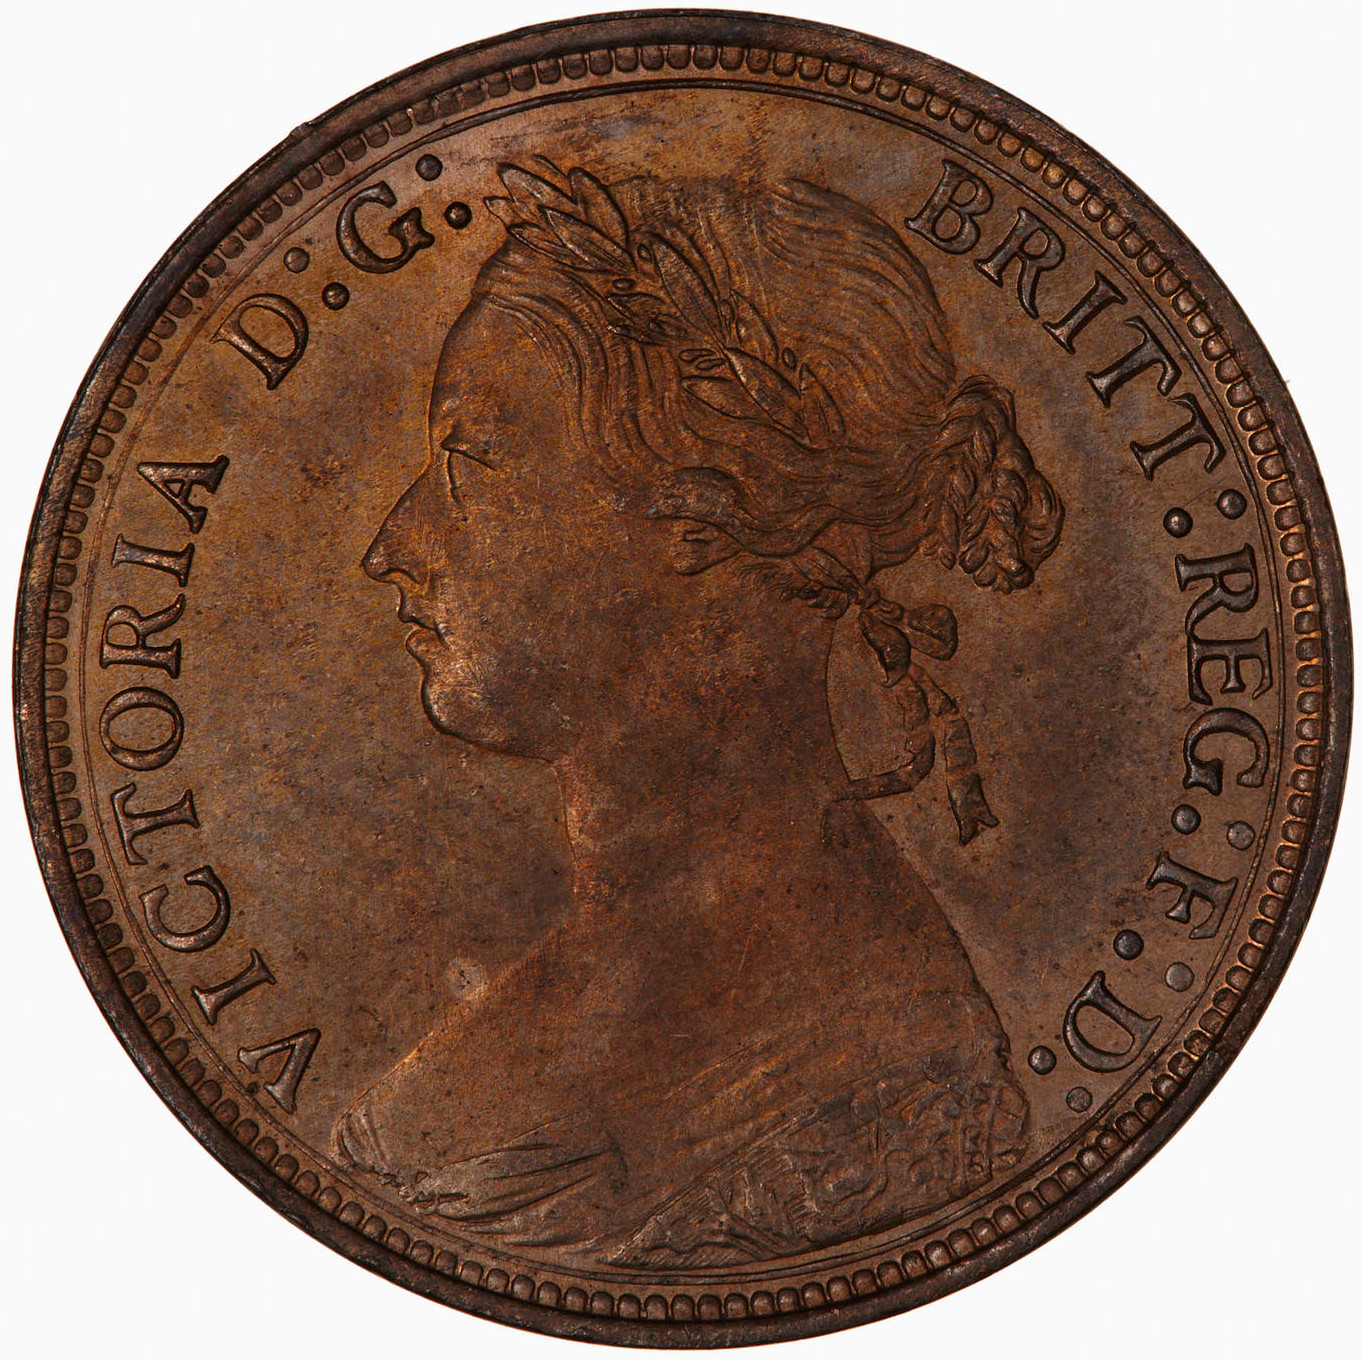 Halfpenny 1879: Photo Coin - Halfpenny, Queen Victoria, Great Britain, 1879